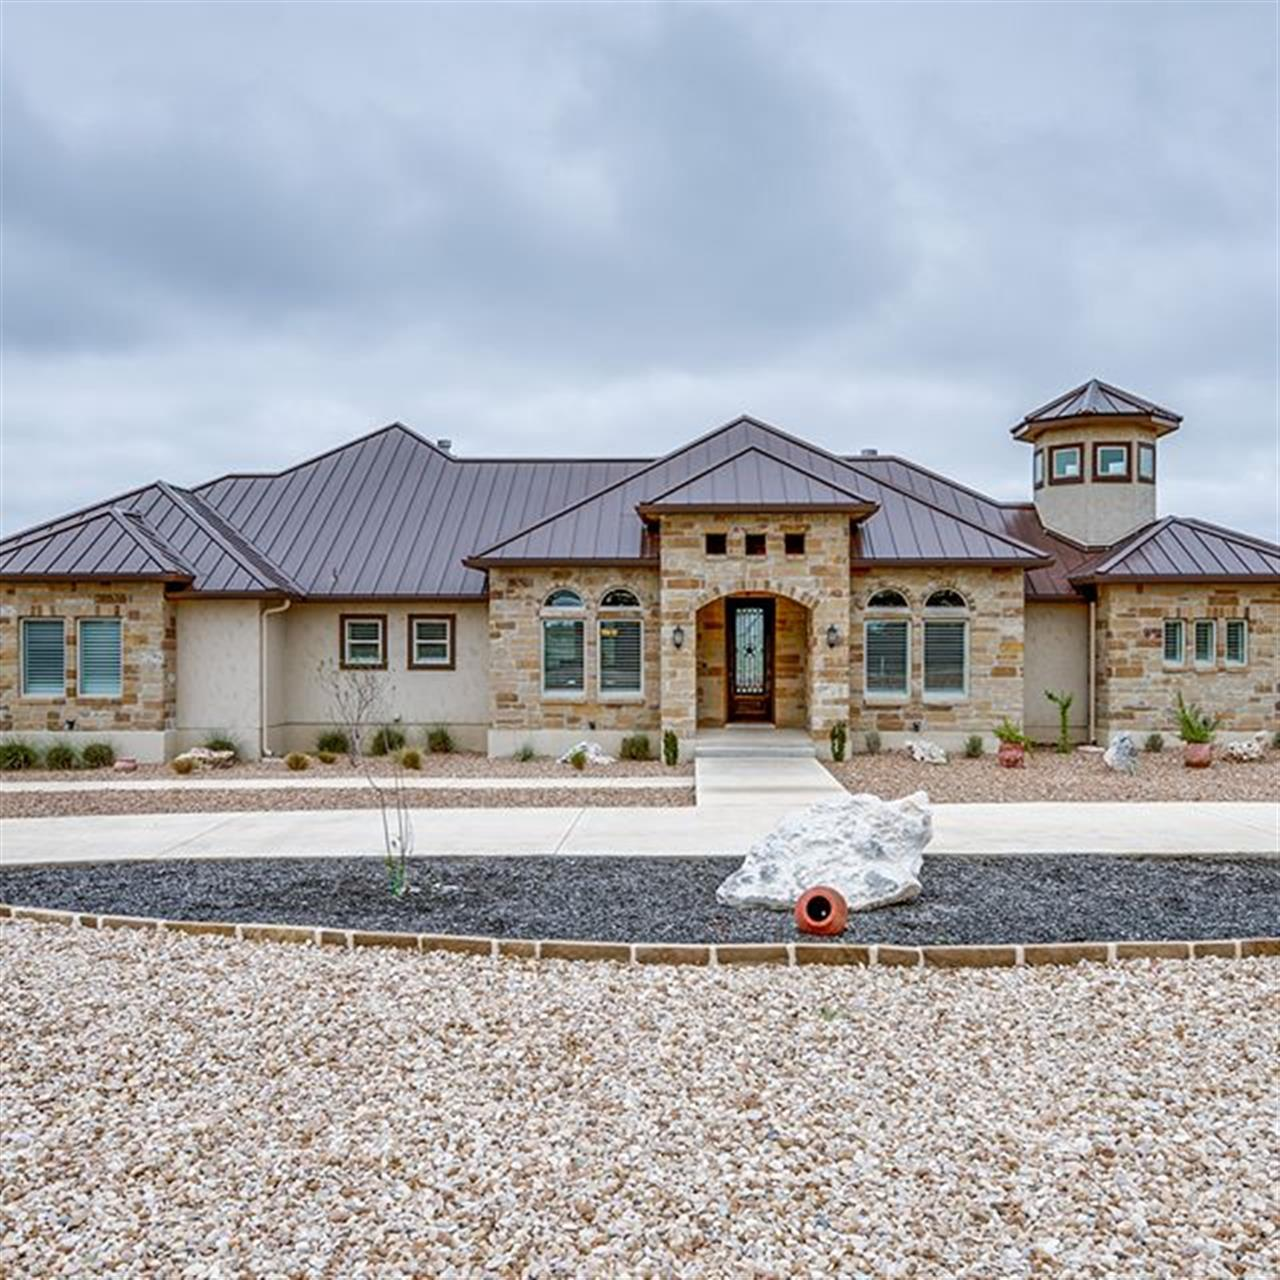 Luxury of the Day: 1413 Vintage Way in @vintageoakstx. Surround yourself in luxury, privacy and comfort at this custom-built single-story home.